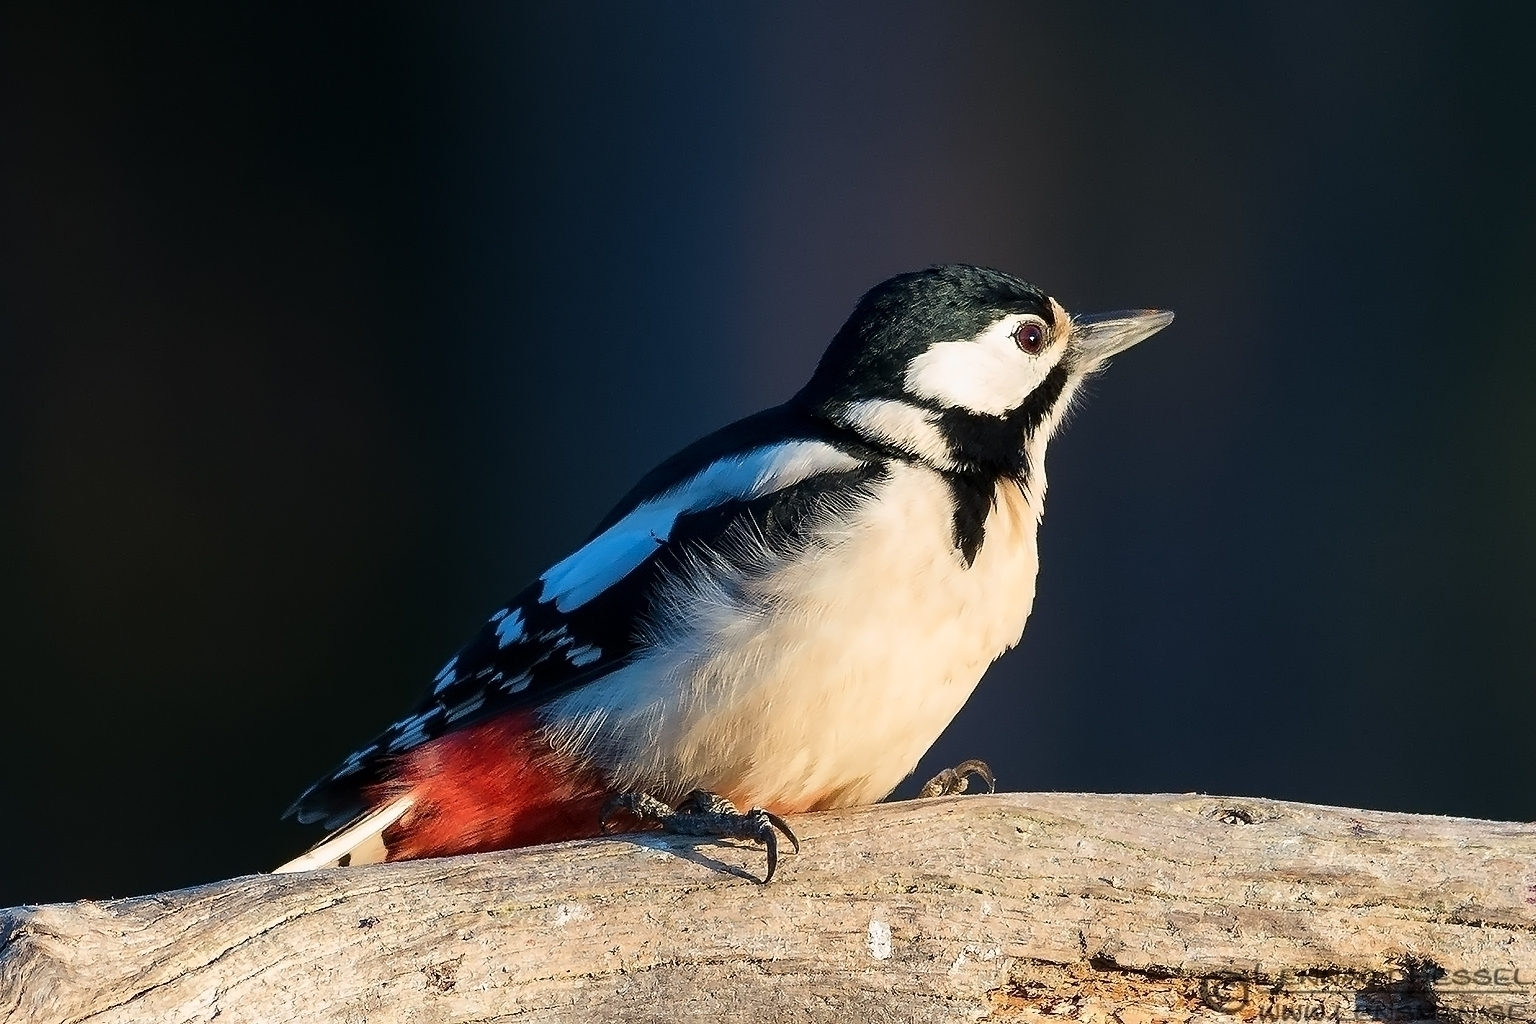 Great Spotted Woodpecker from the Golden Eagle workshop